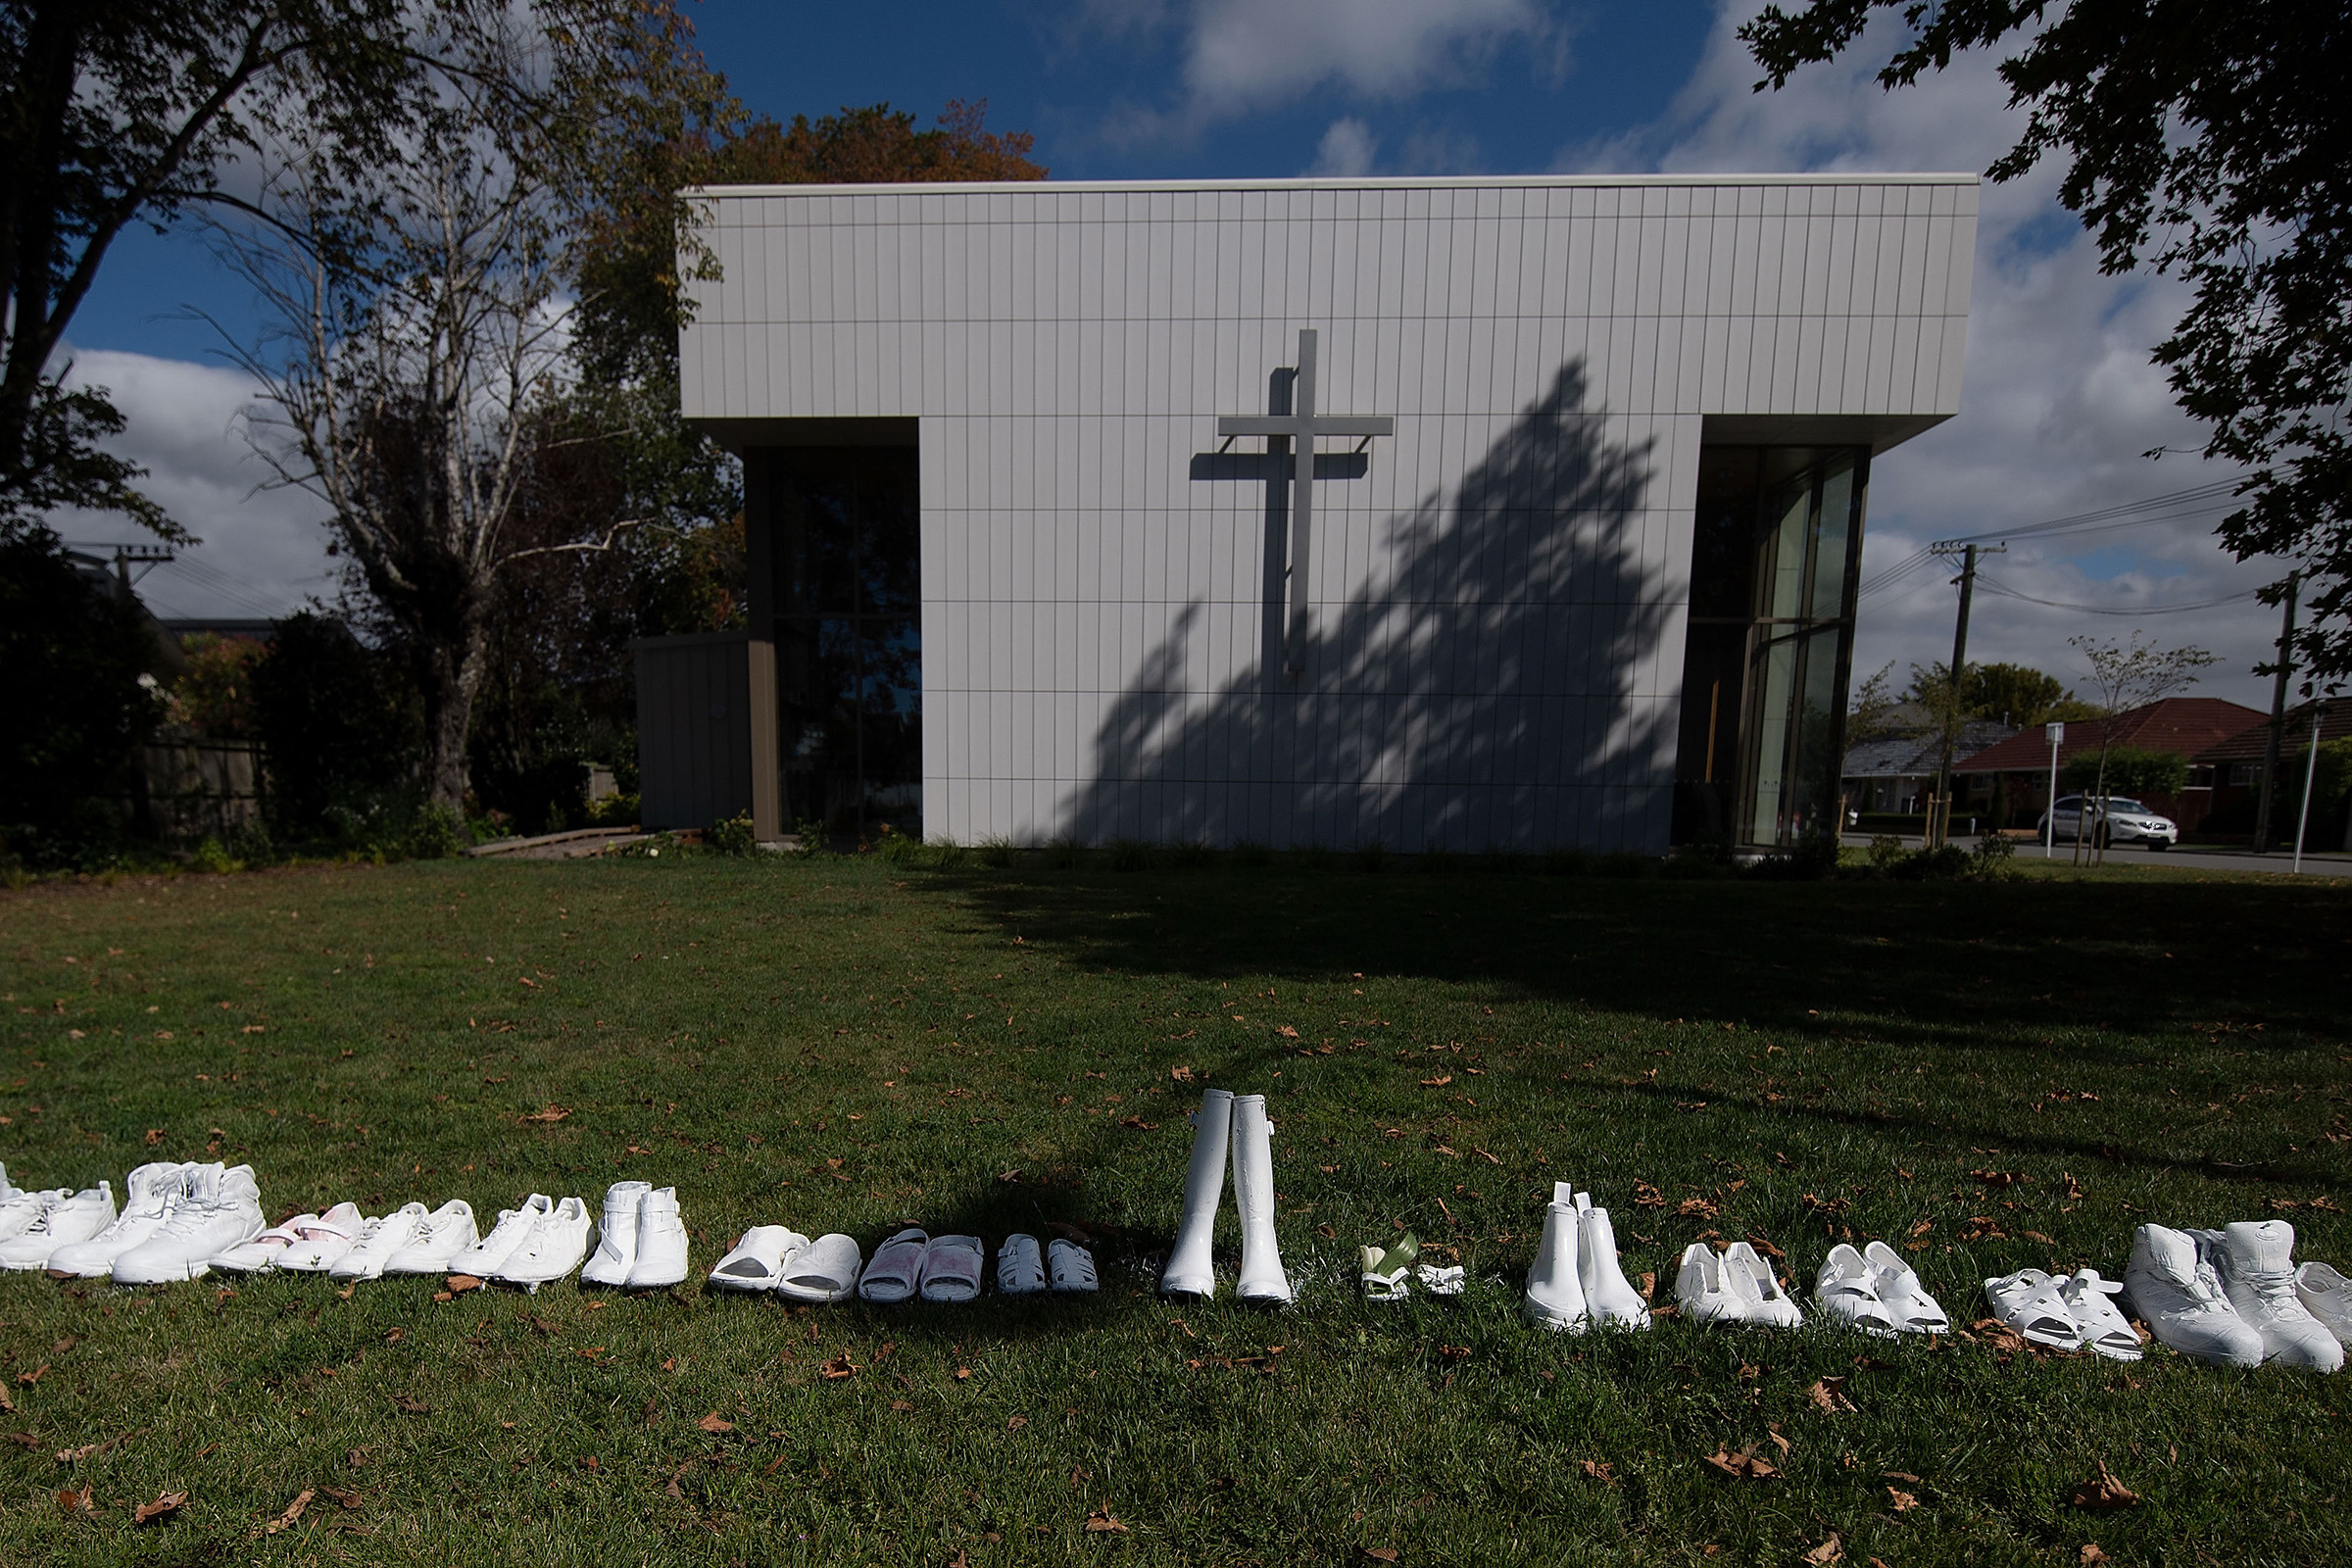 Fifty pairs of shoes lay outside the All Souls Church representing the 50 people gunned down at the two mosques in Christchurch on March 19, 2019.